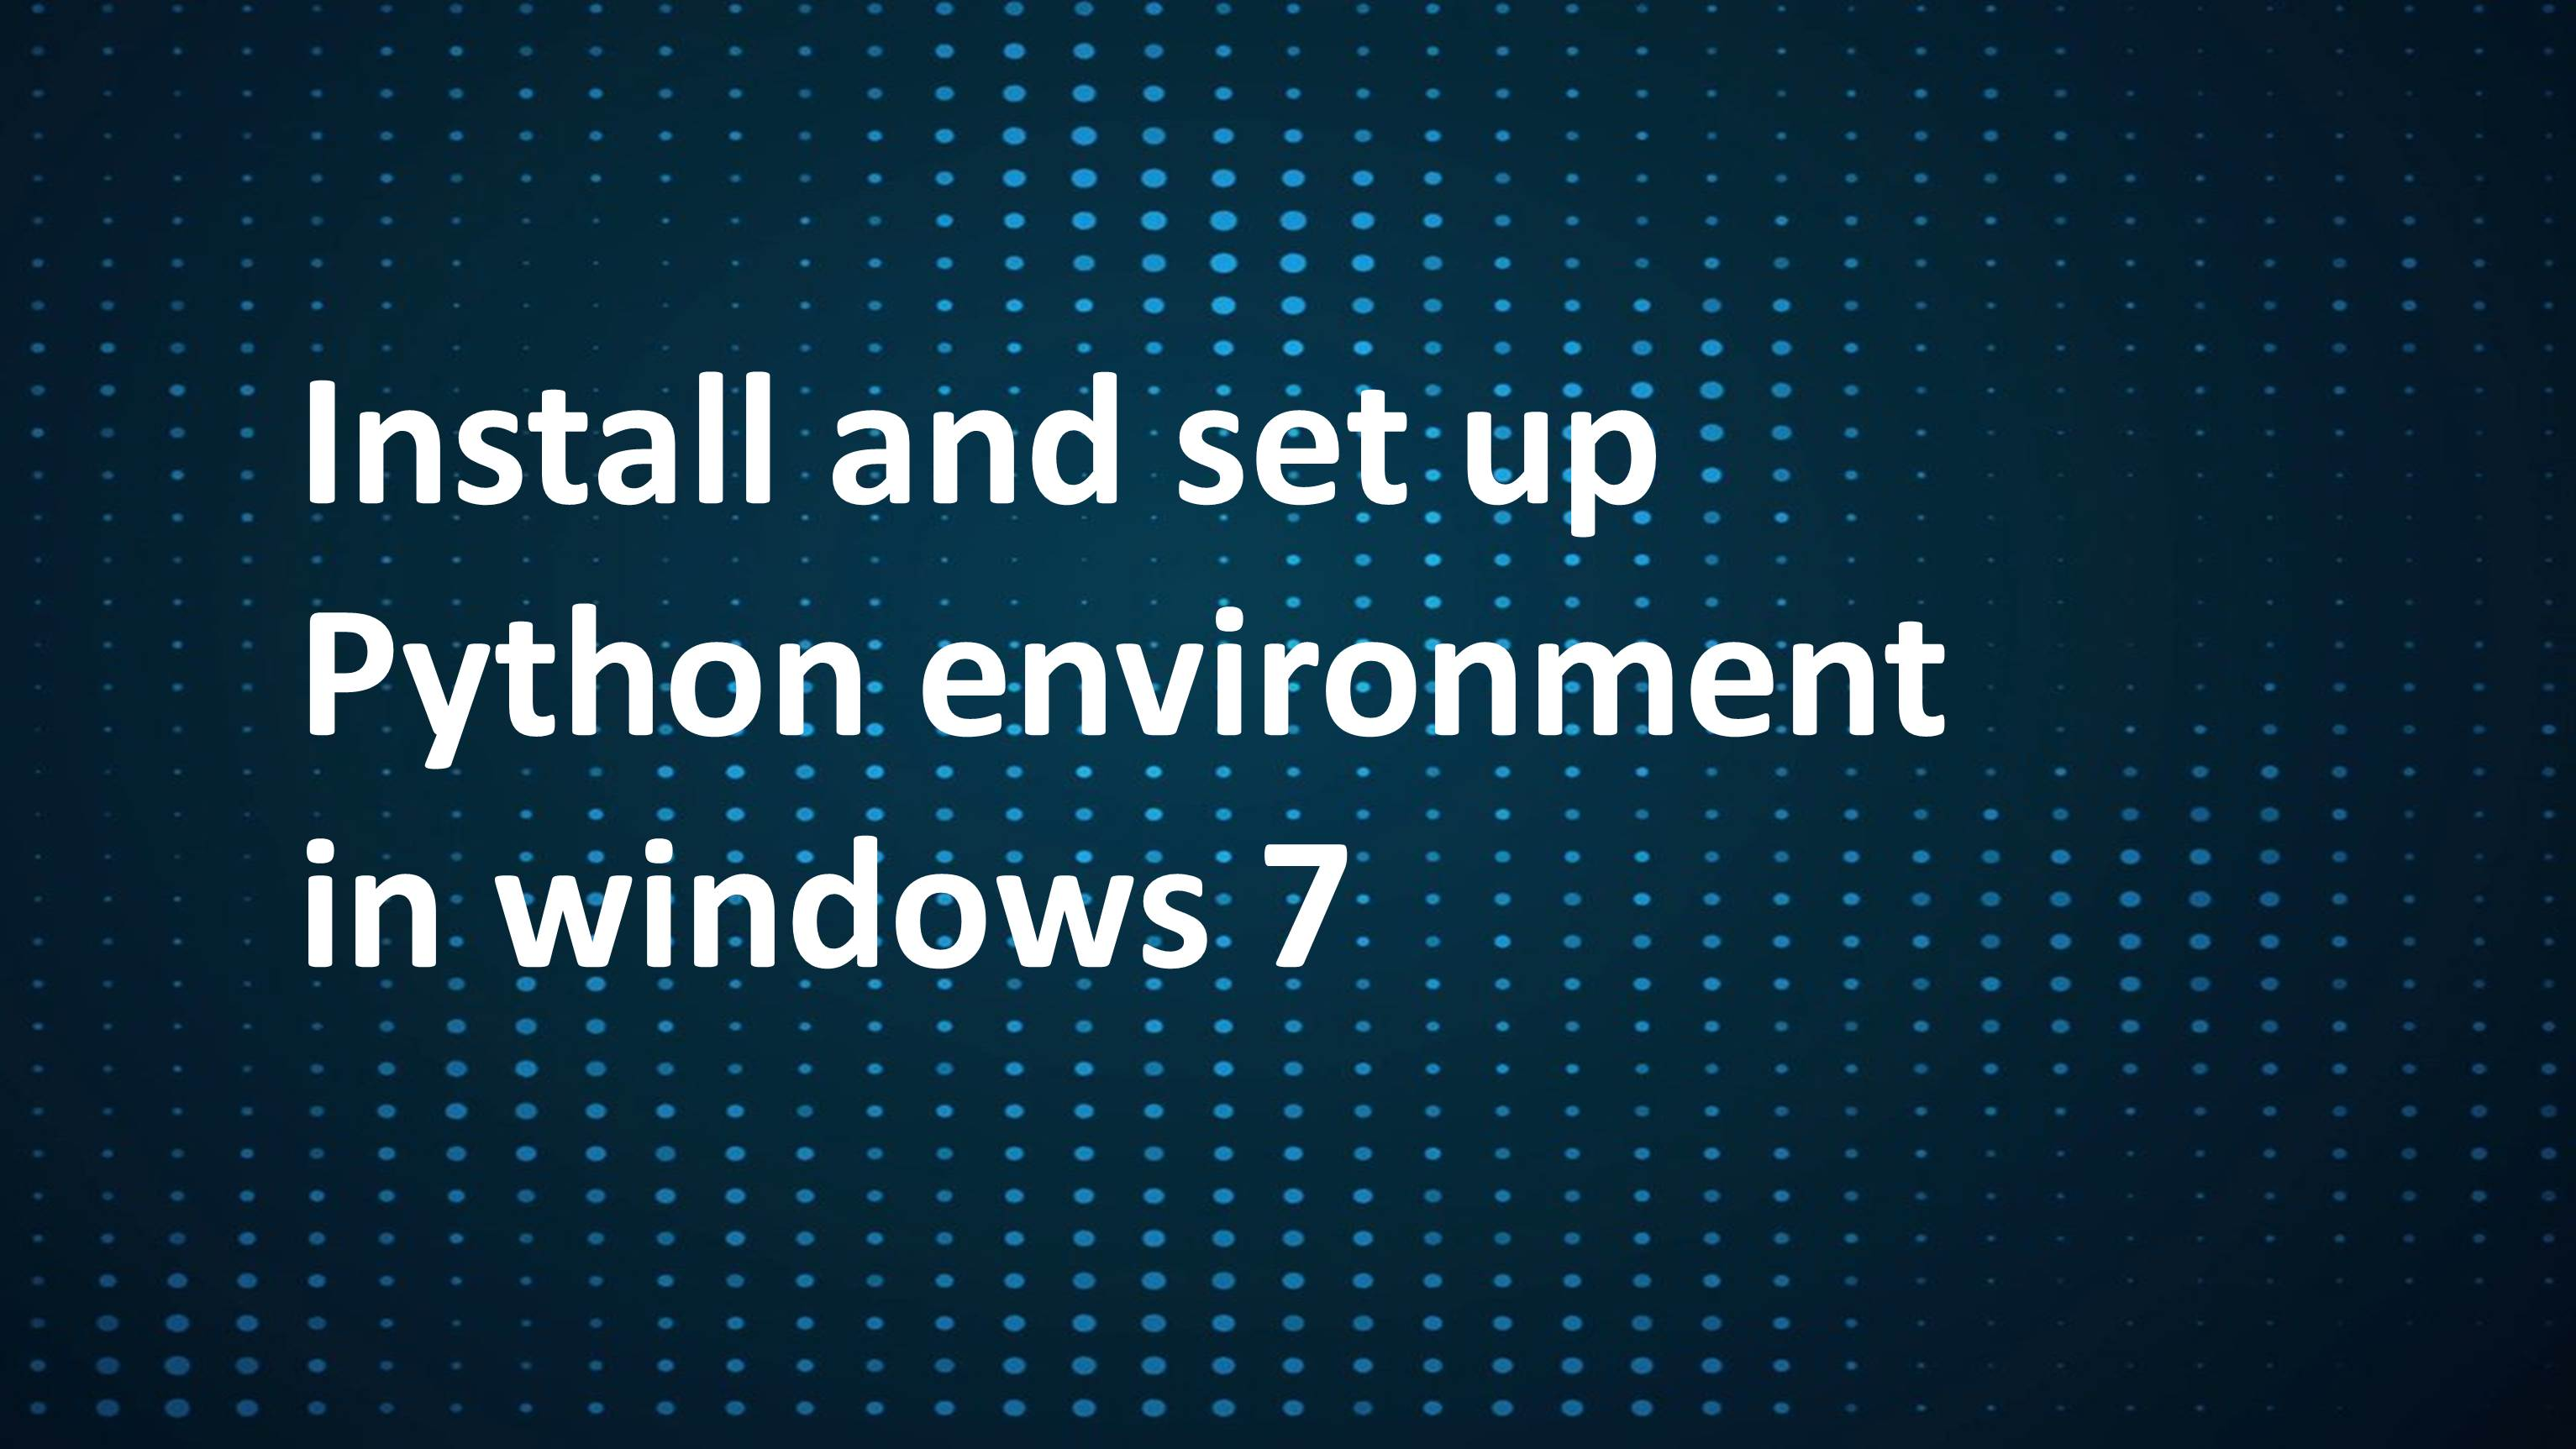 How to install and set up a Python Programming environment in windows 7